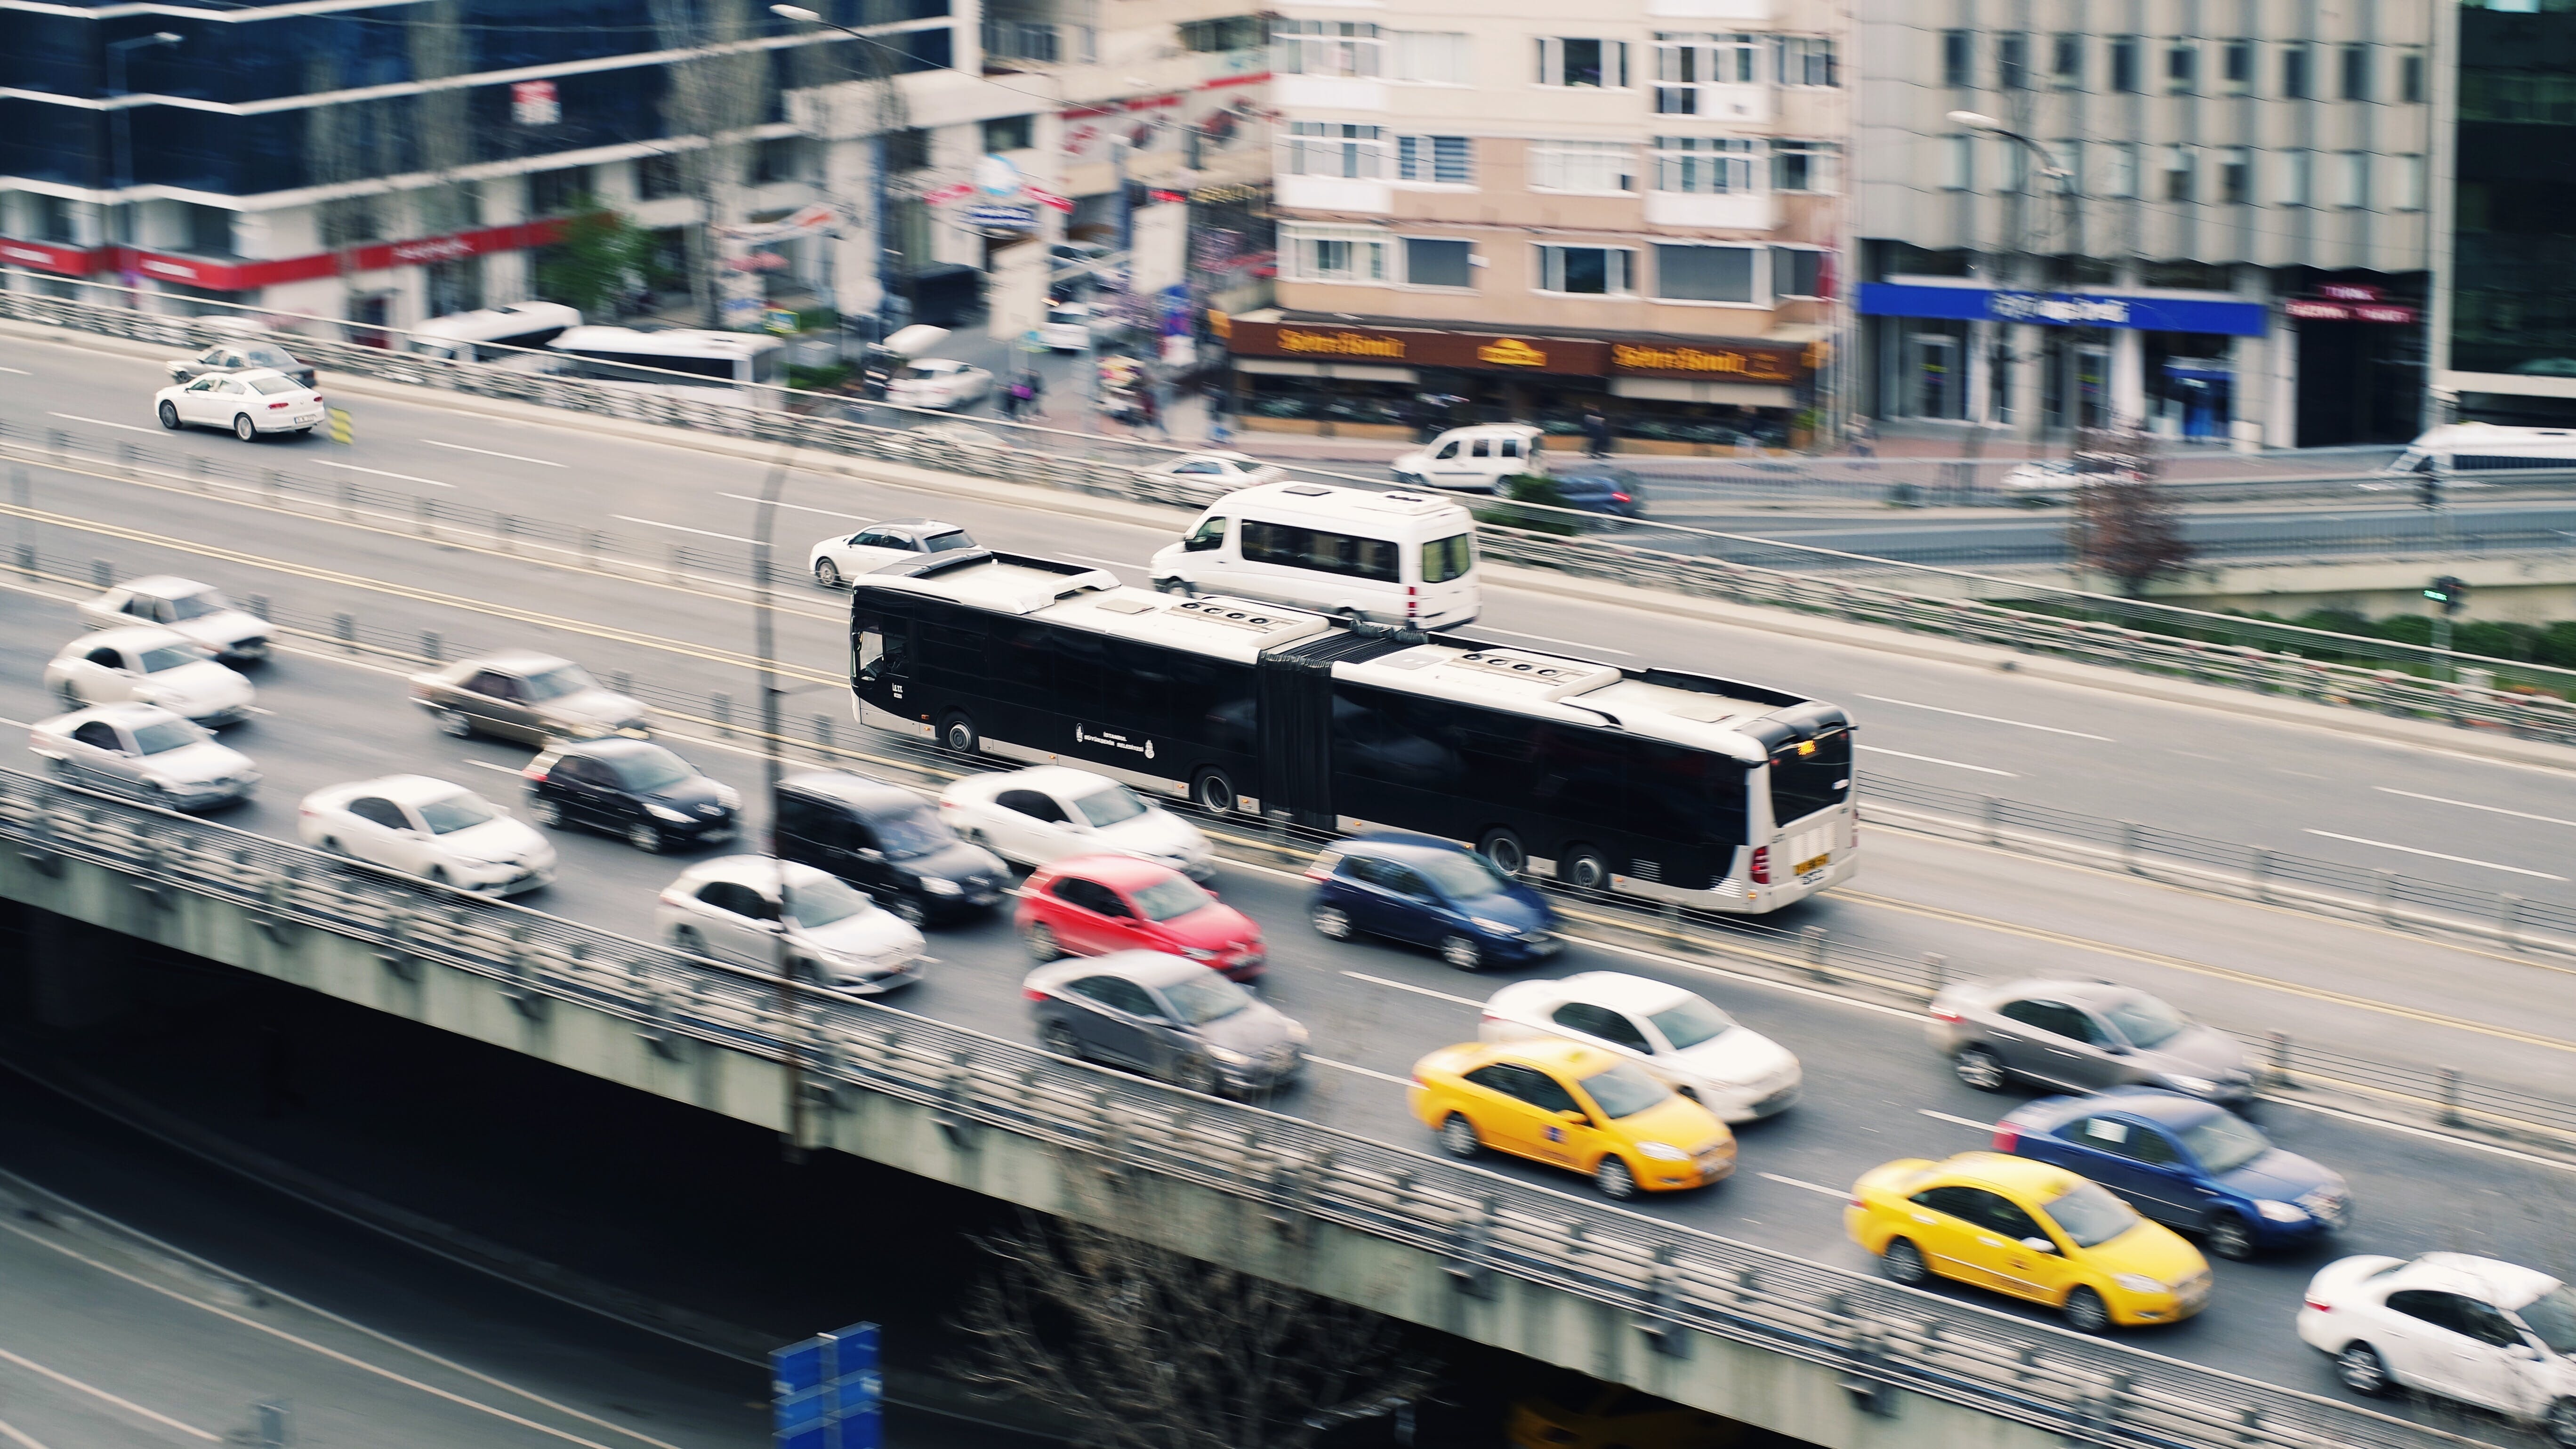 Black and White Bus during Daytime